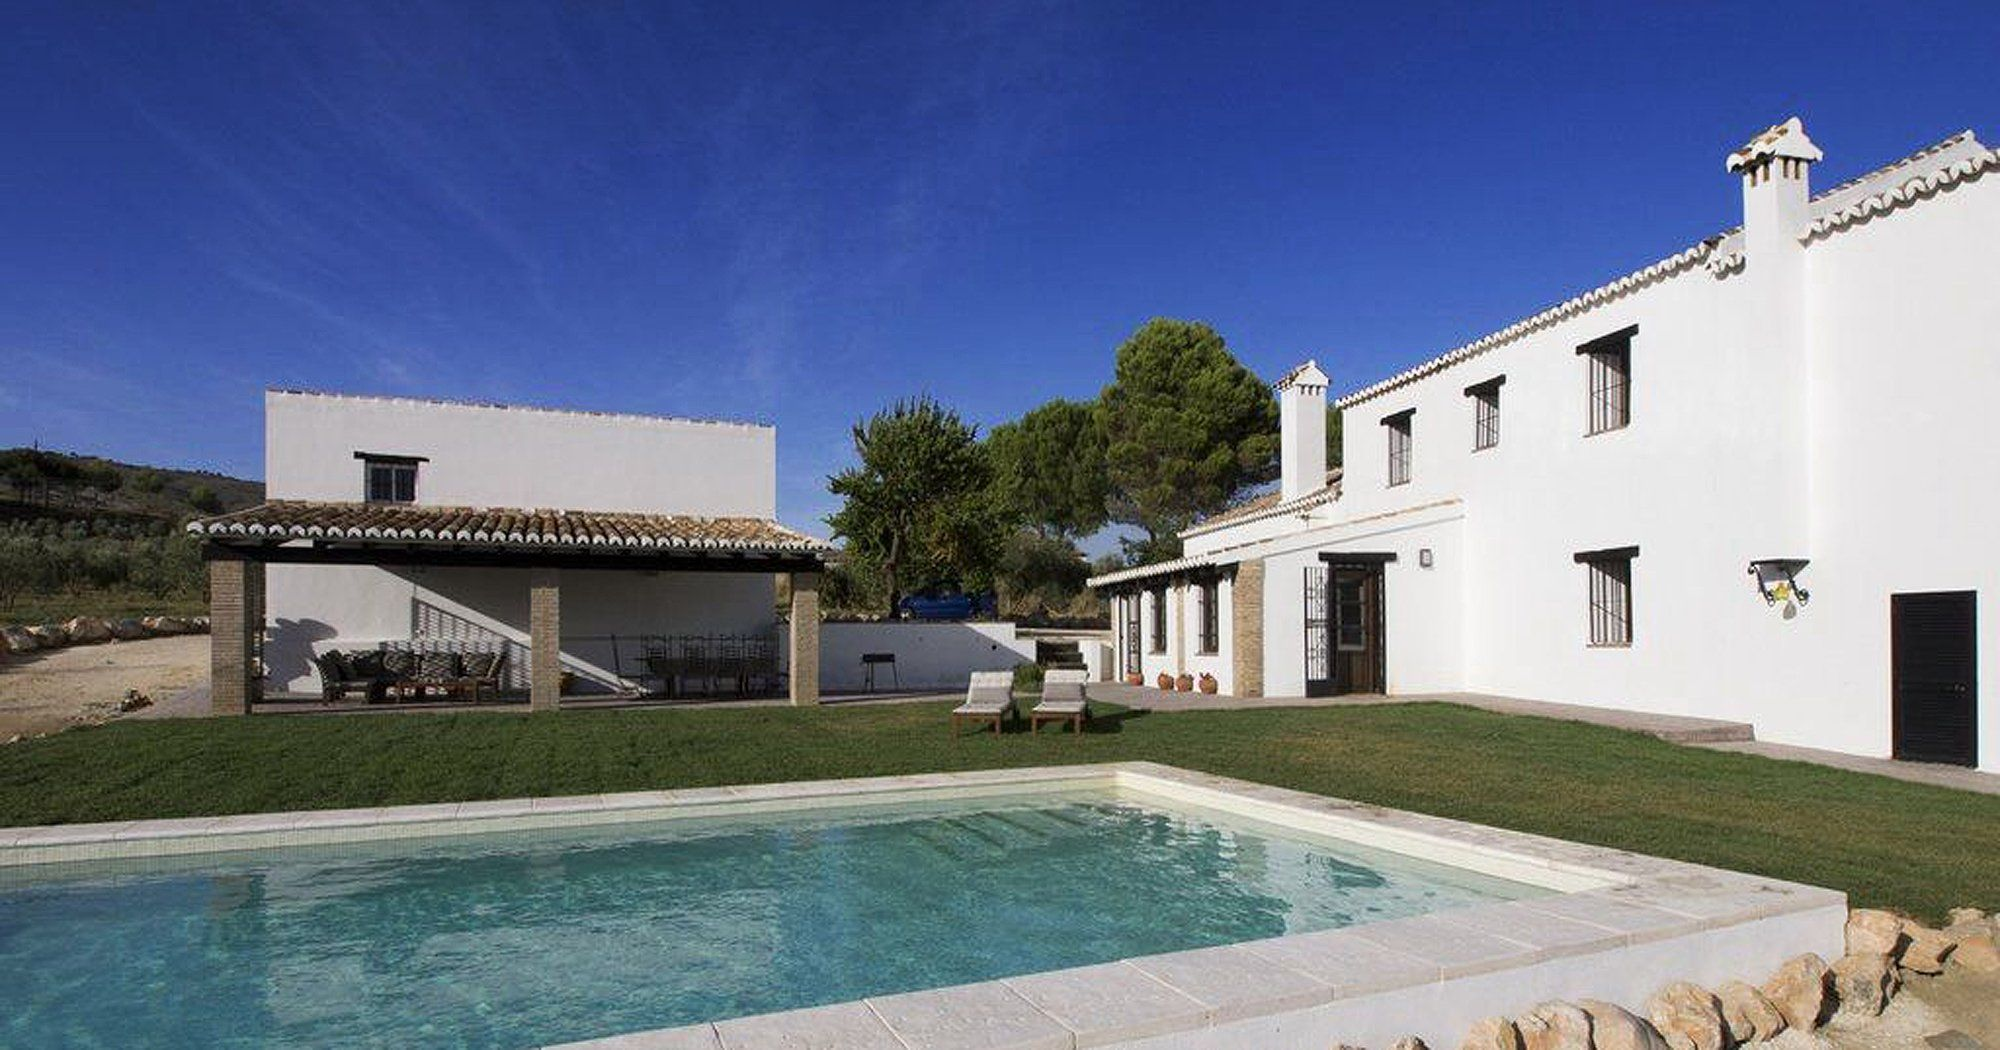 villas andalucia and pool